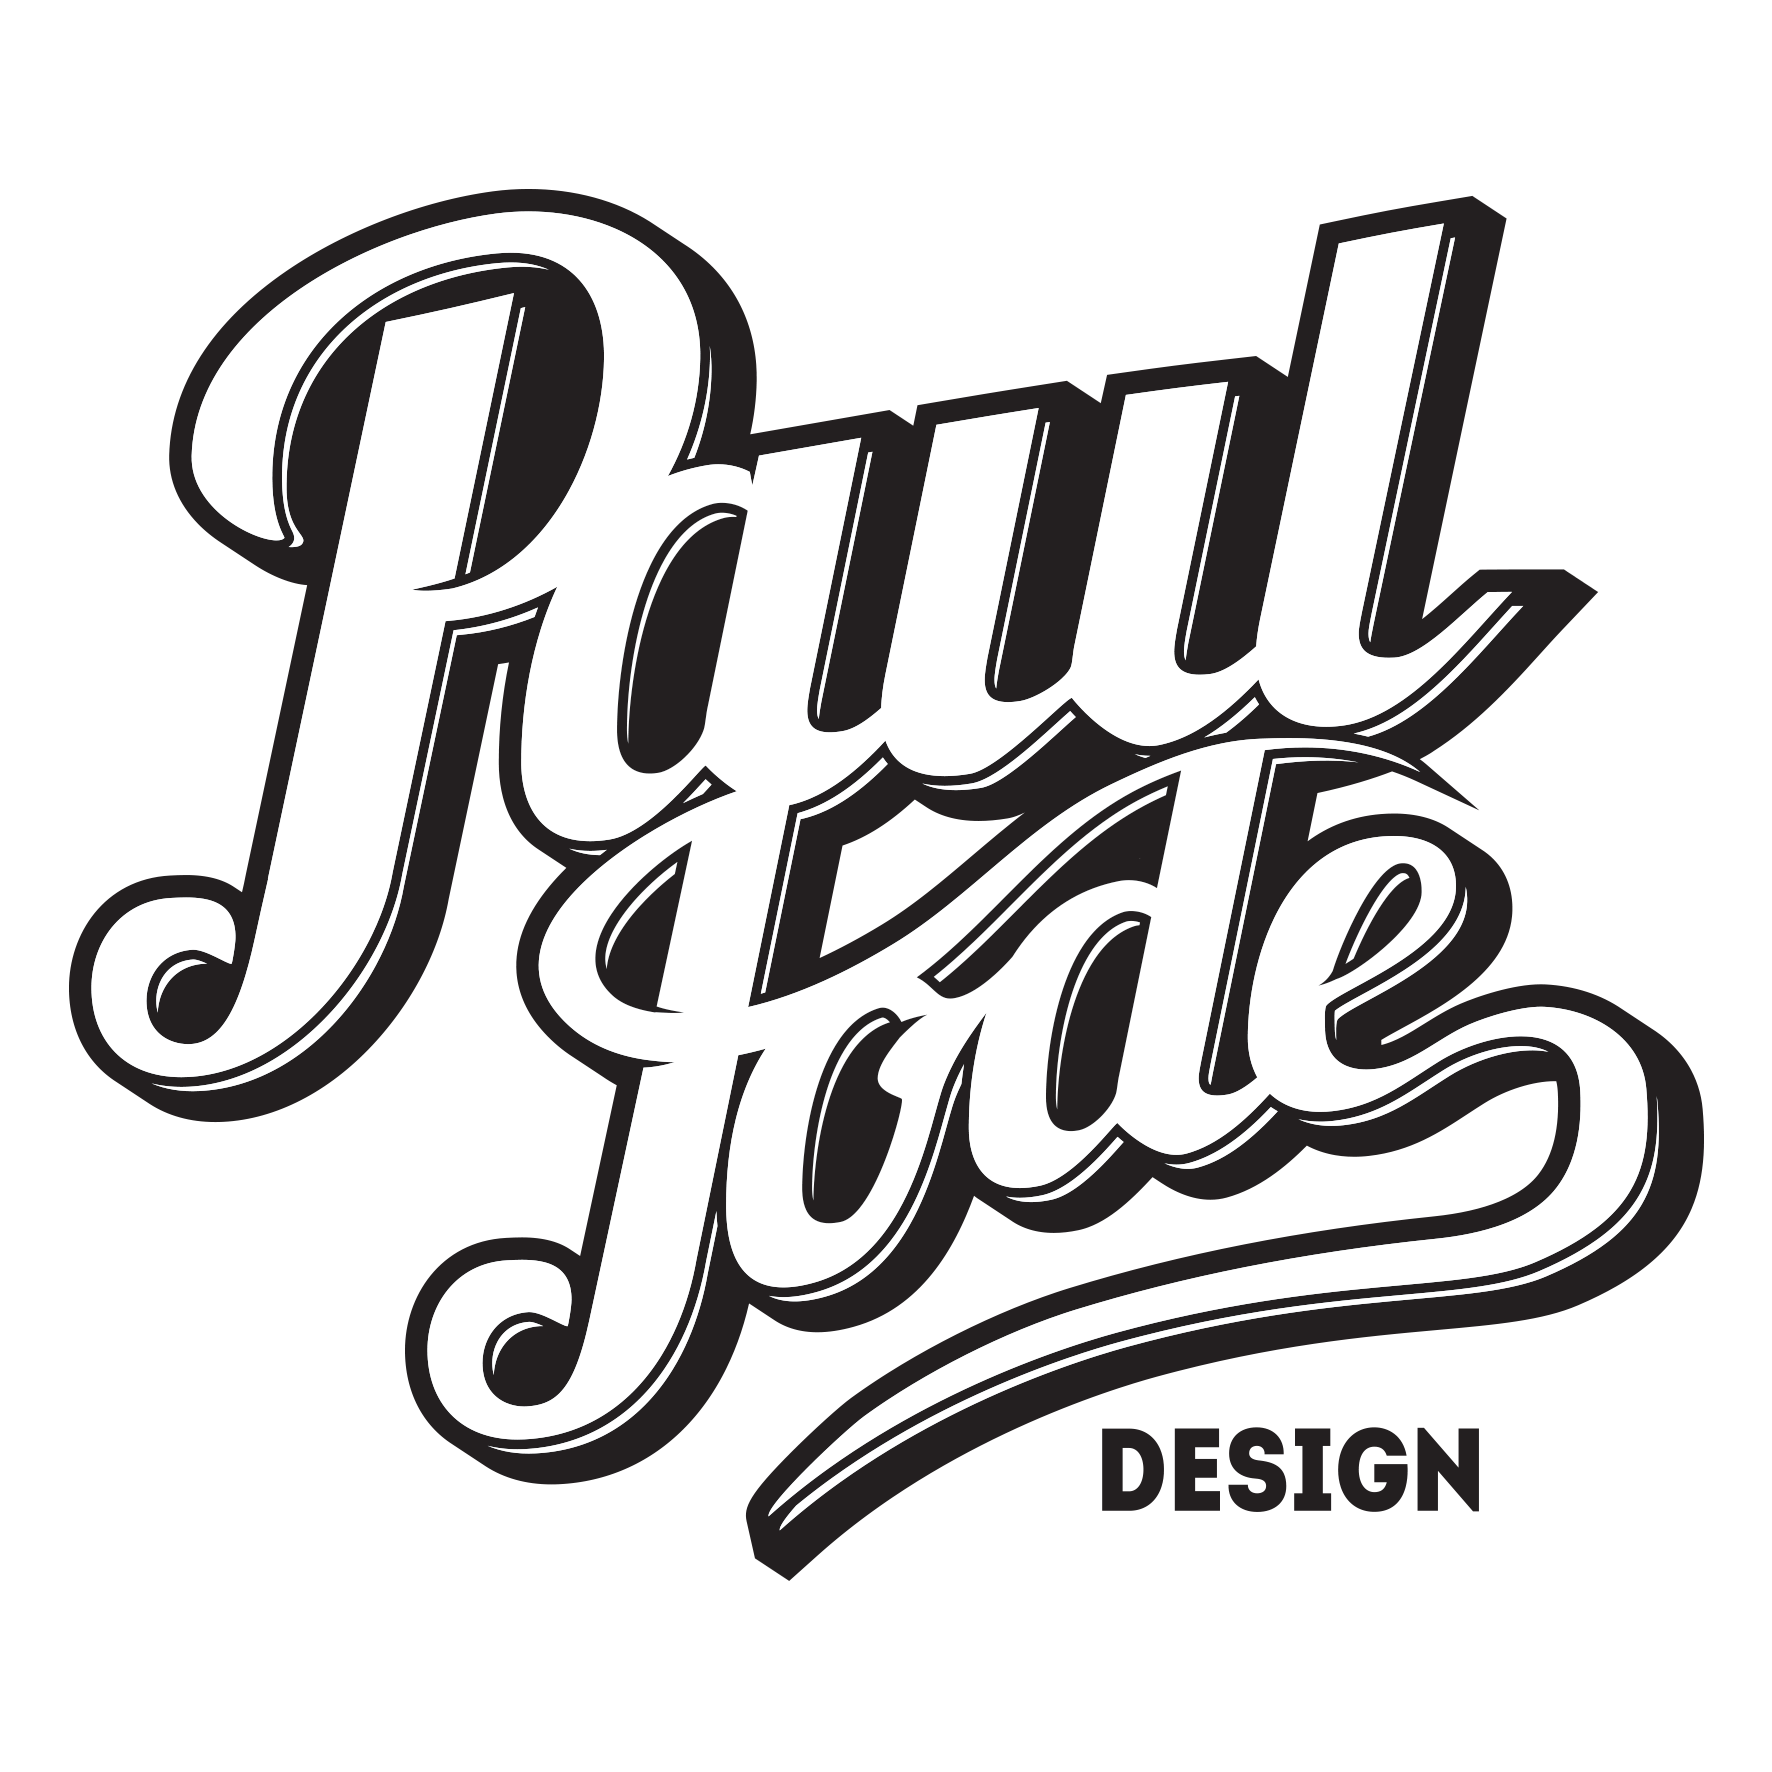 Paul Jode Design